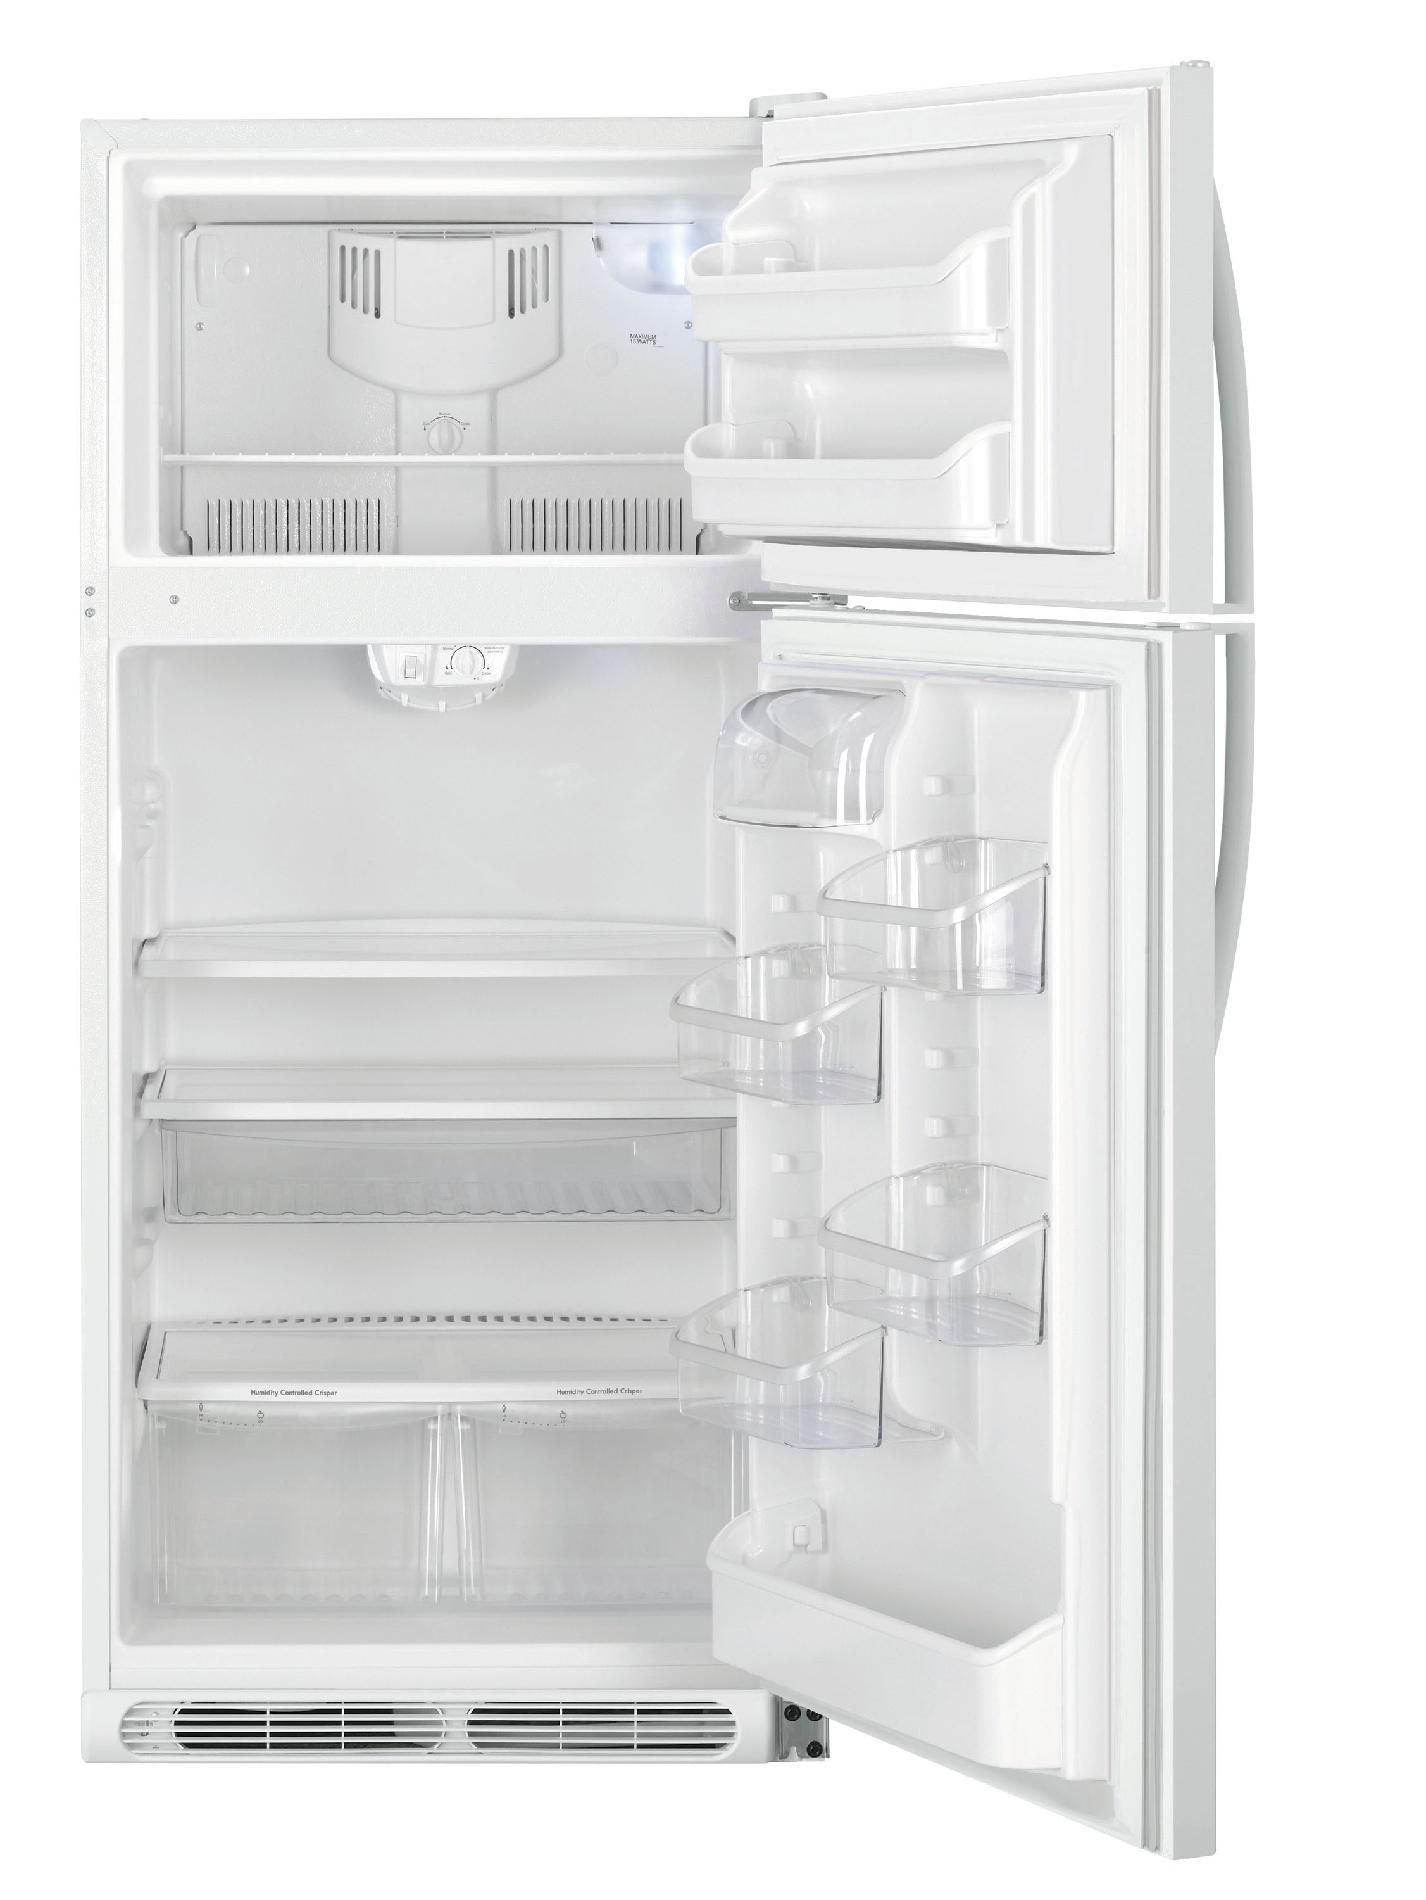 Kenmore 18 cu. ft. Top Freezer Refrigerator - White